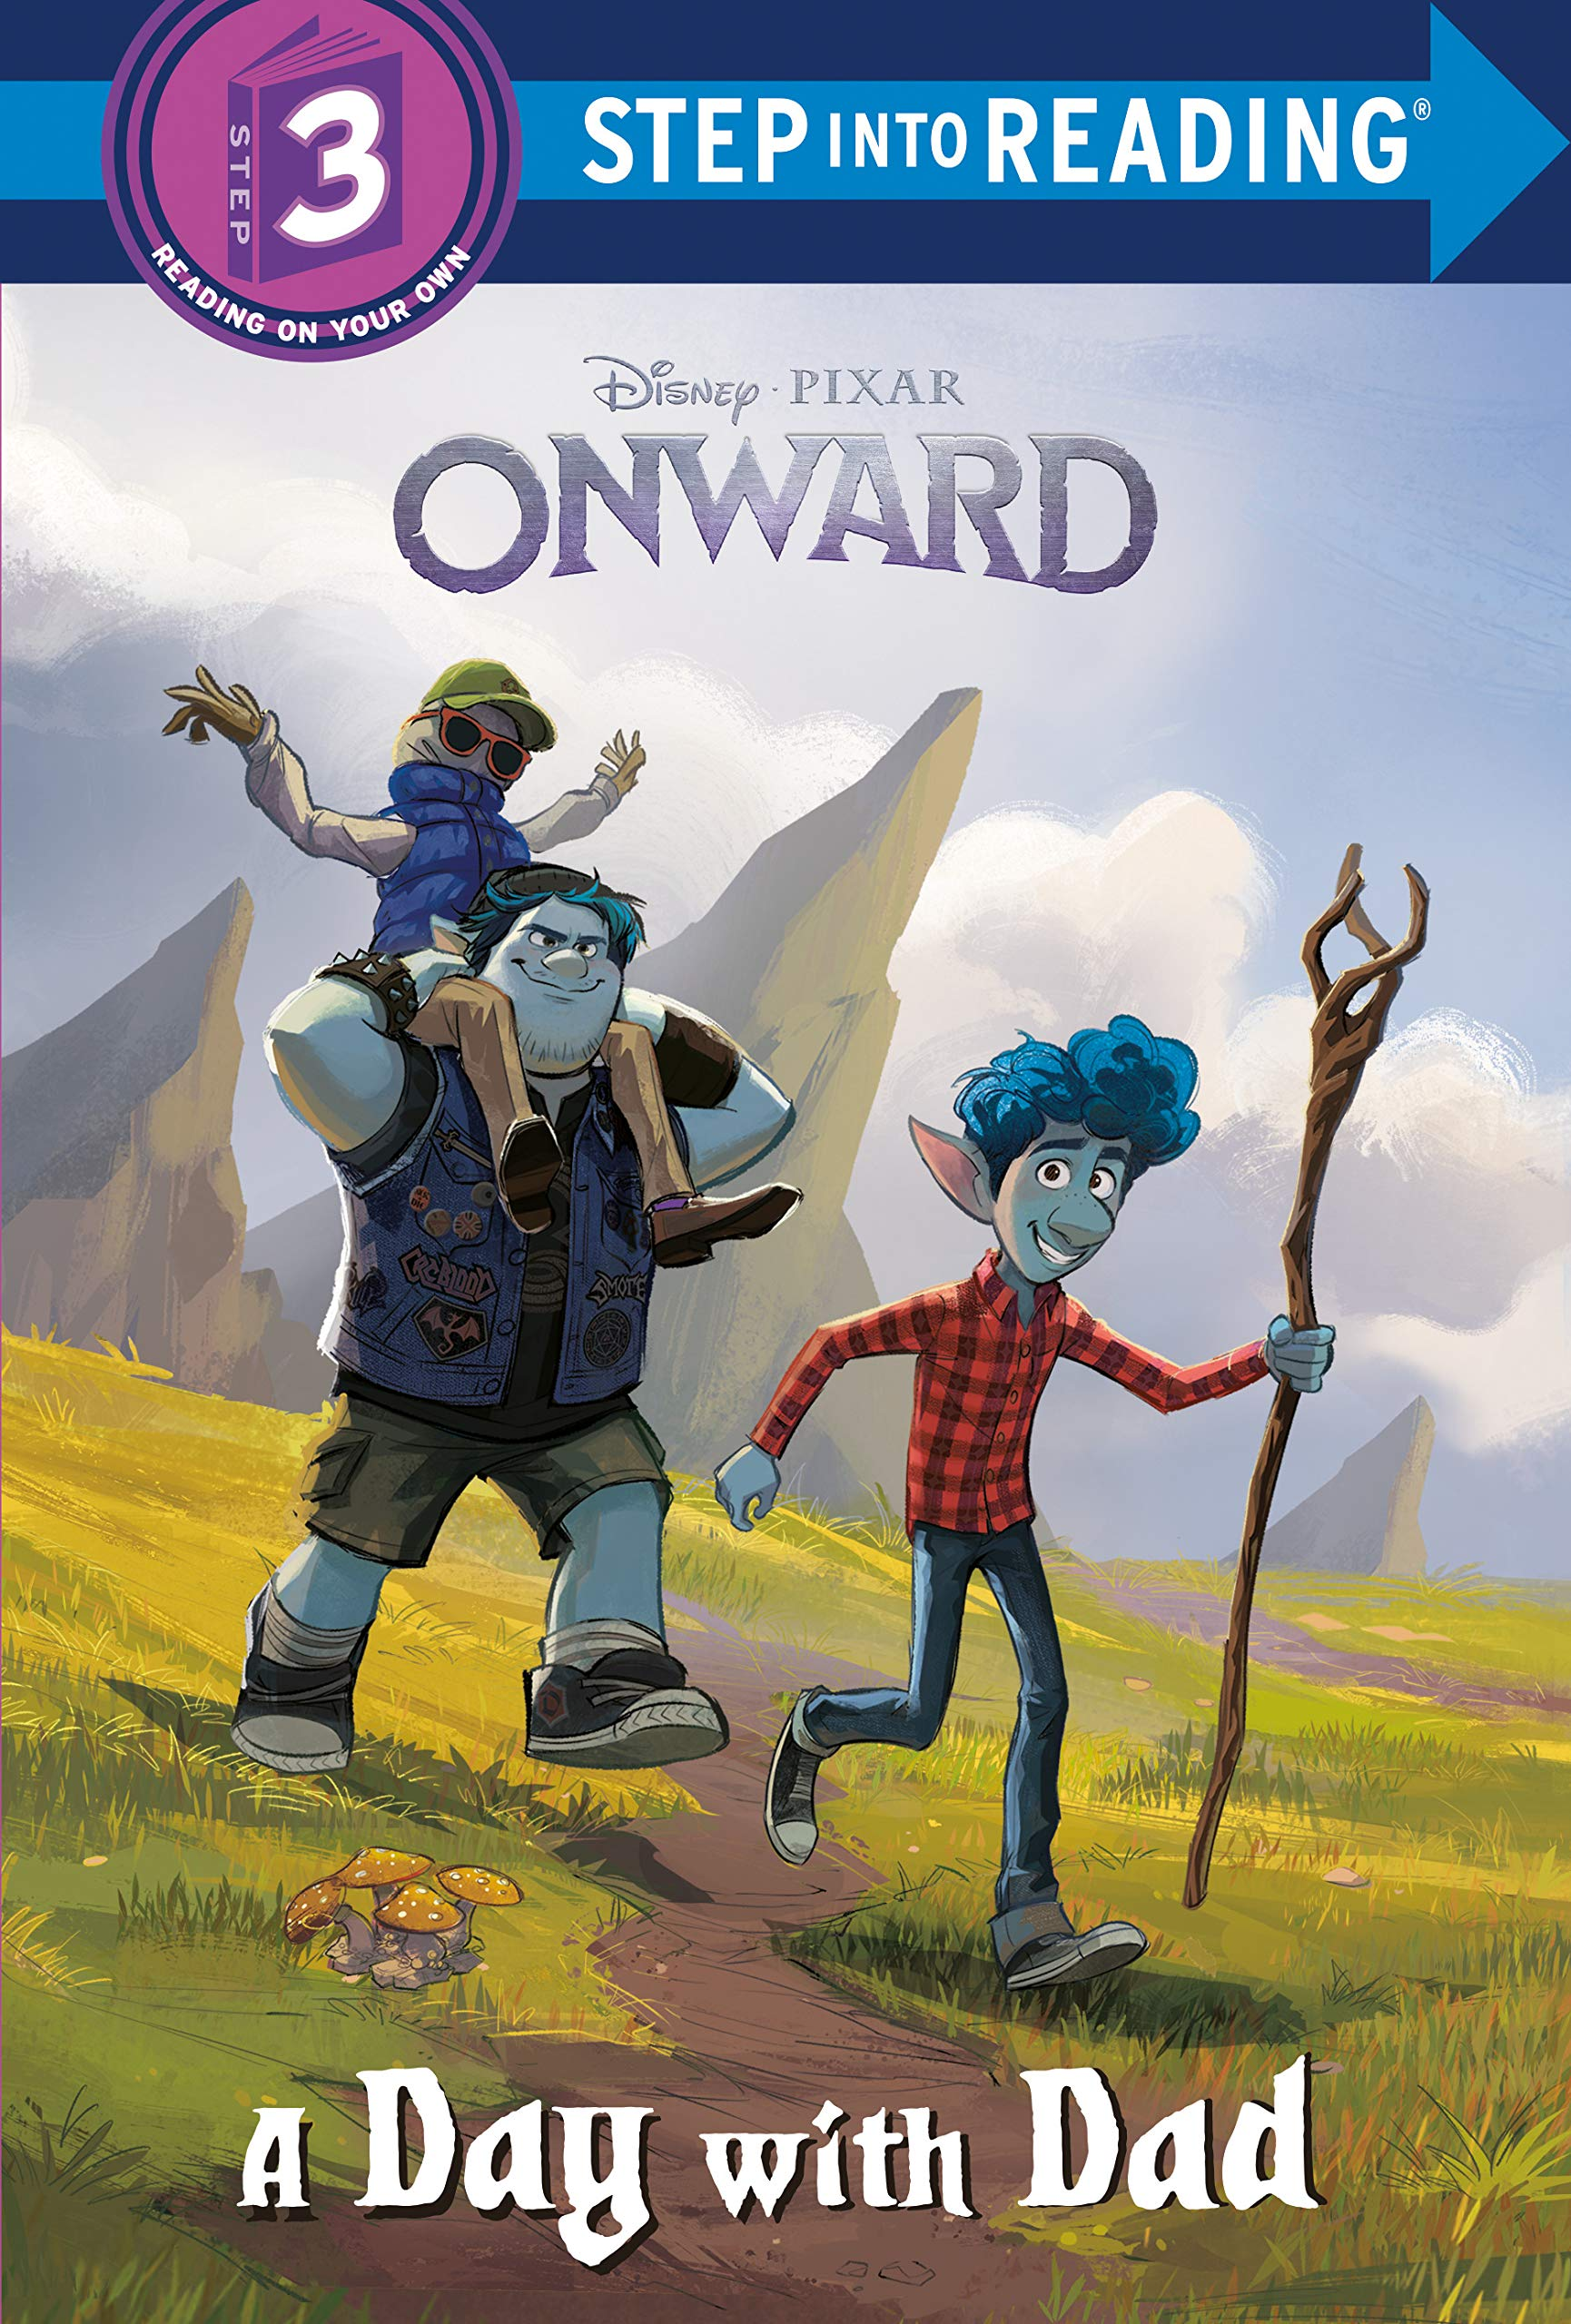 A Day with Dad (Disney/Pixar Onward) (Step into Reading): RH Disney, Disney Storybook Art Team: 9780736482899: Amazon.com: Books